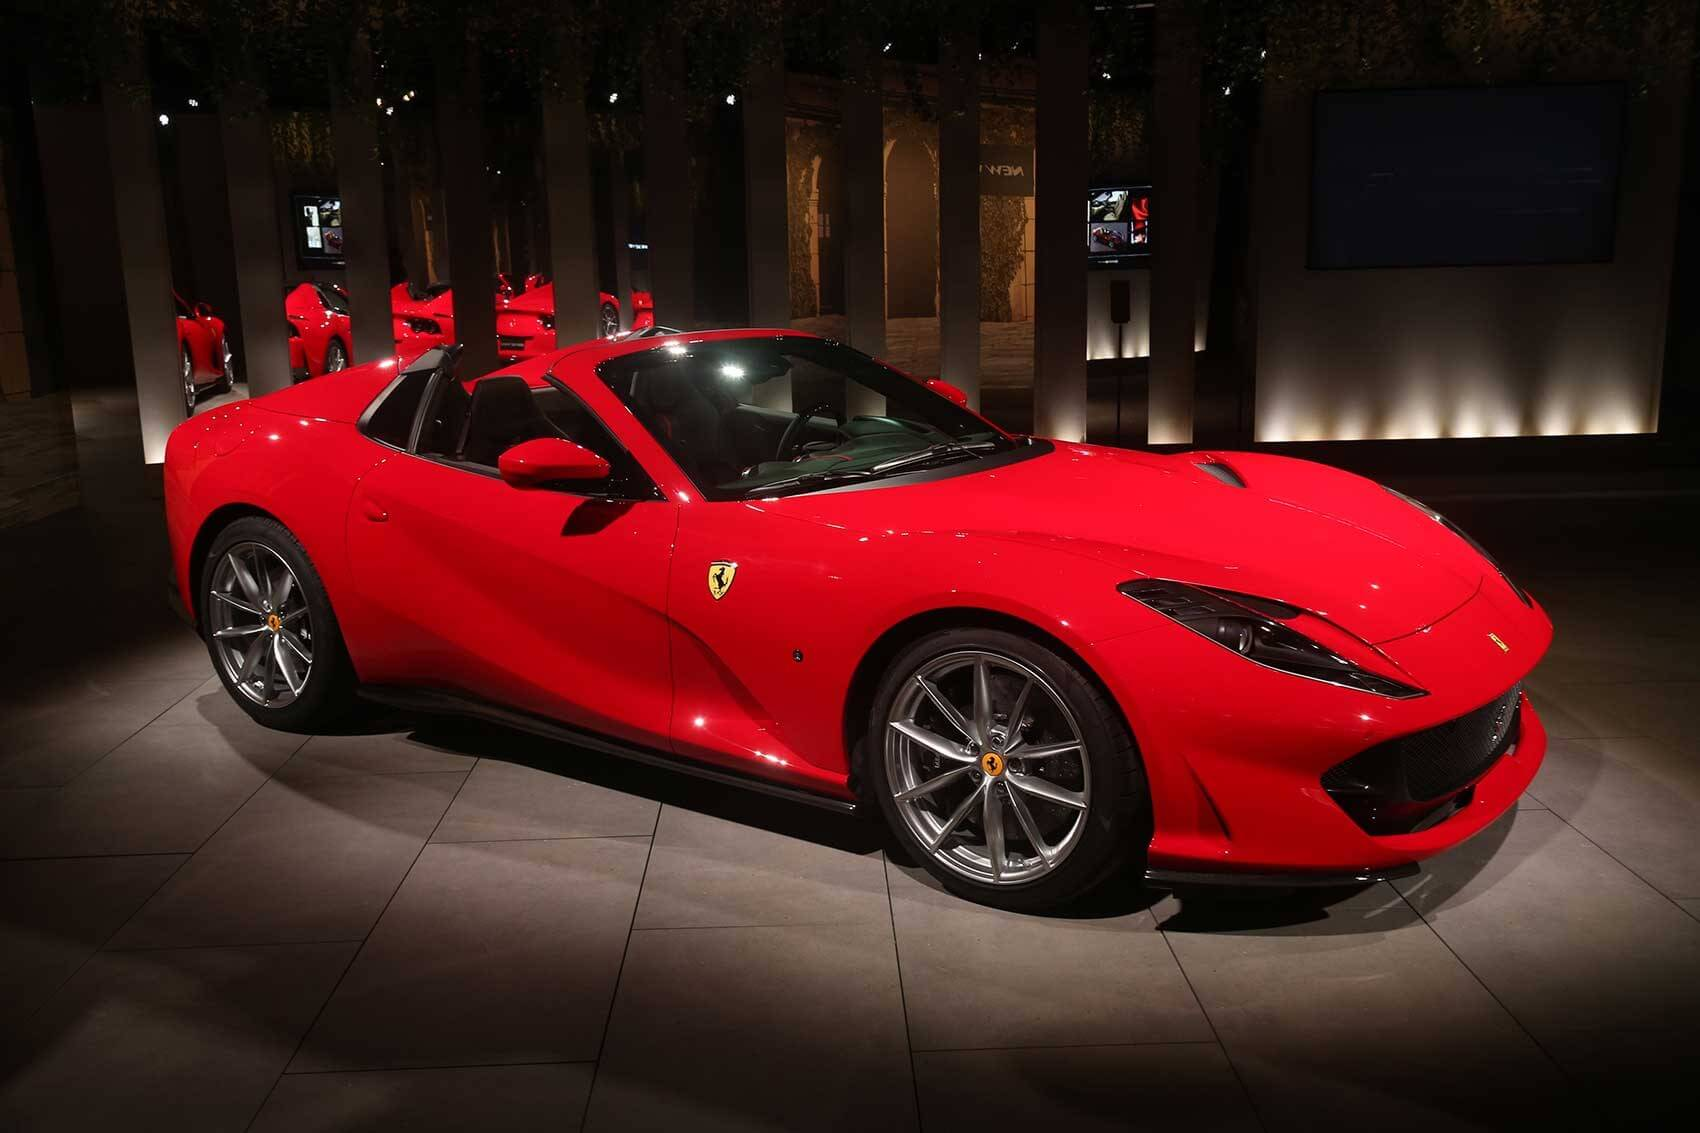 Ferrari 812 Gts Is The Epitome Of Open Top Performance